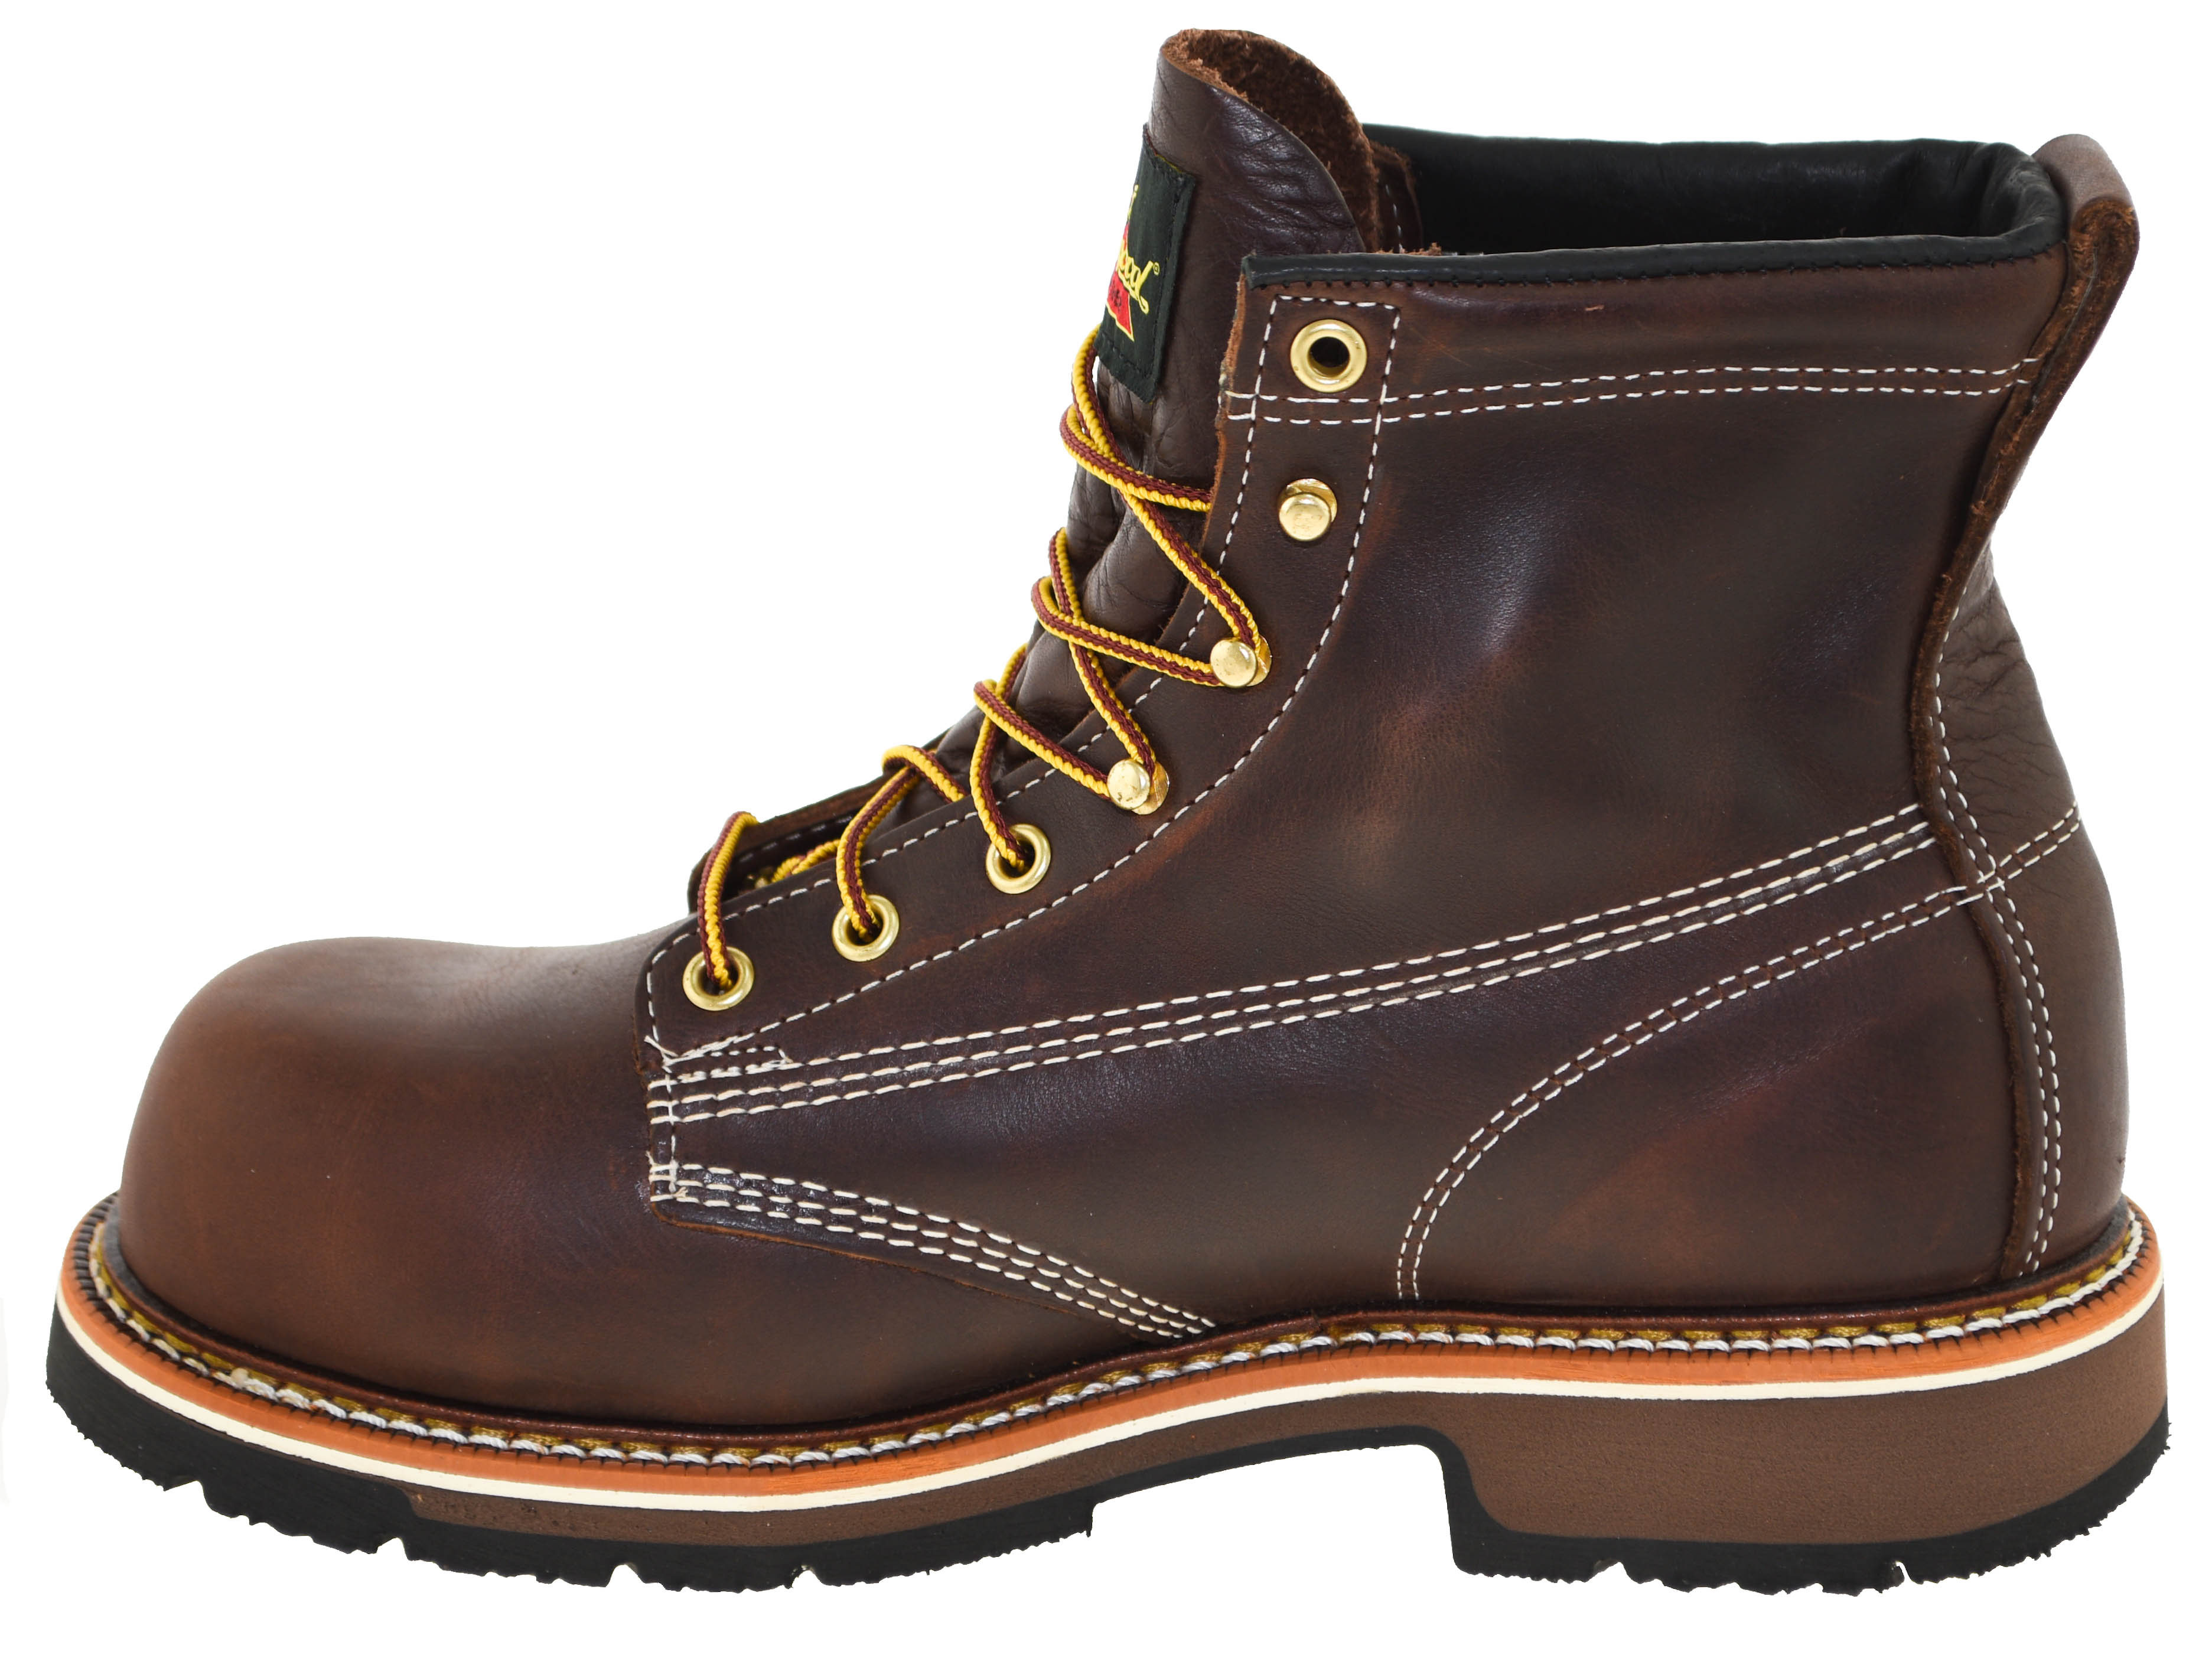 5415a003fb2 Details about Thorogood Men's American Heritage 6